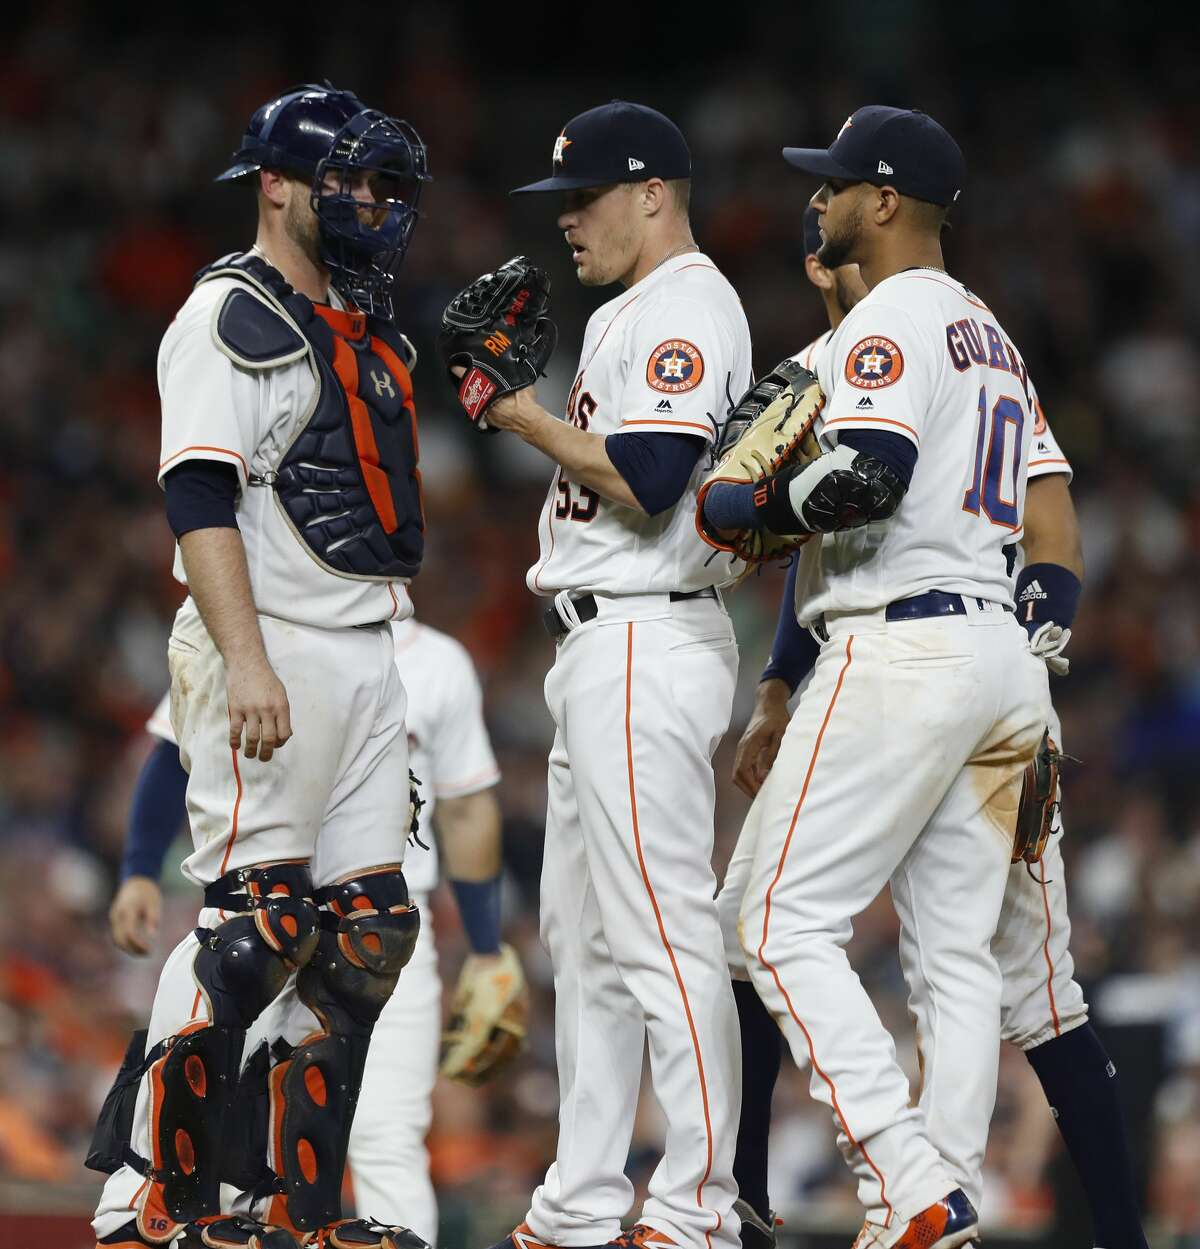 Houston Astros relief pitcher Ken Giles (53) gets a visit to the mound by catcher Brian McCann (16) during the ninth inning of an MLB game at Minute Maid Park, Tuesday, May 1, 2018, in Houston. ( Karen Warren / Houston Chronicle )